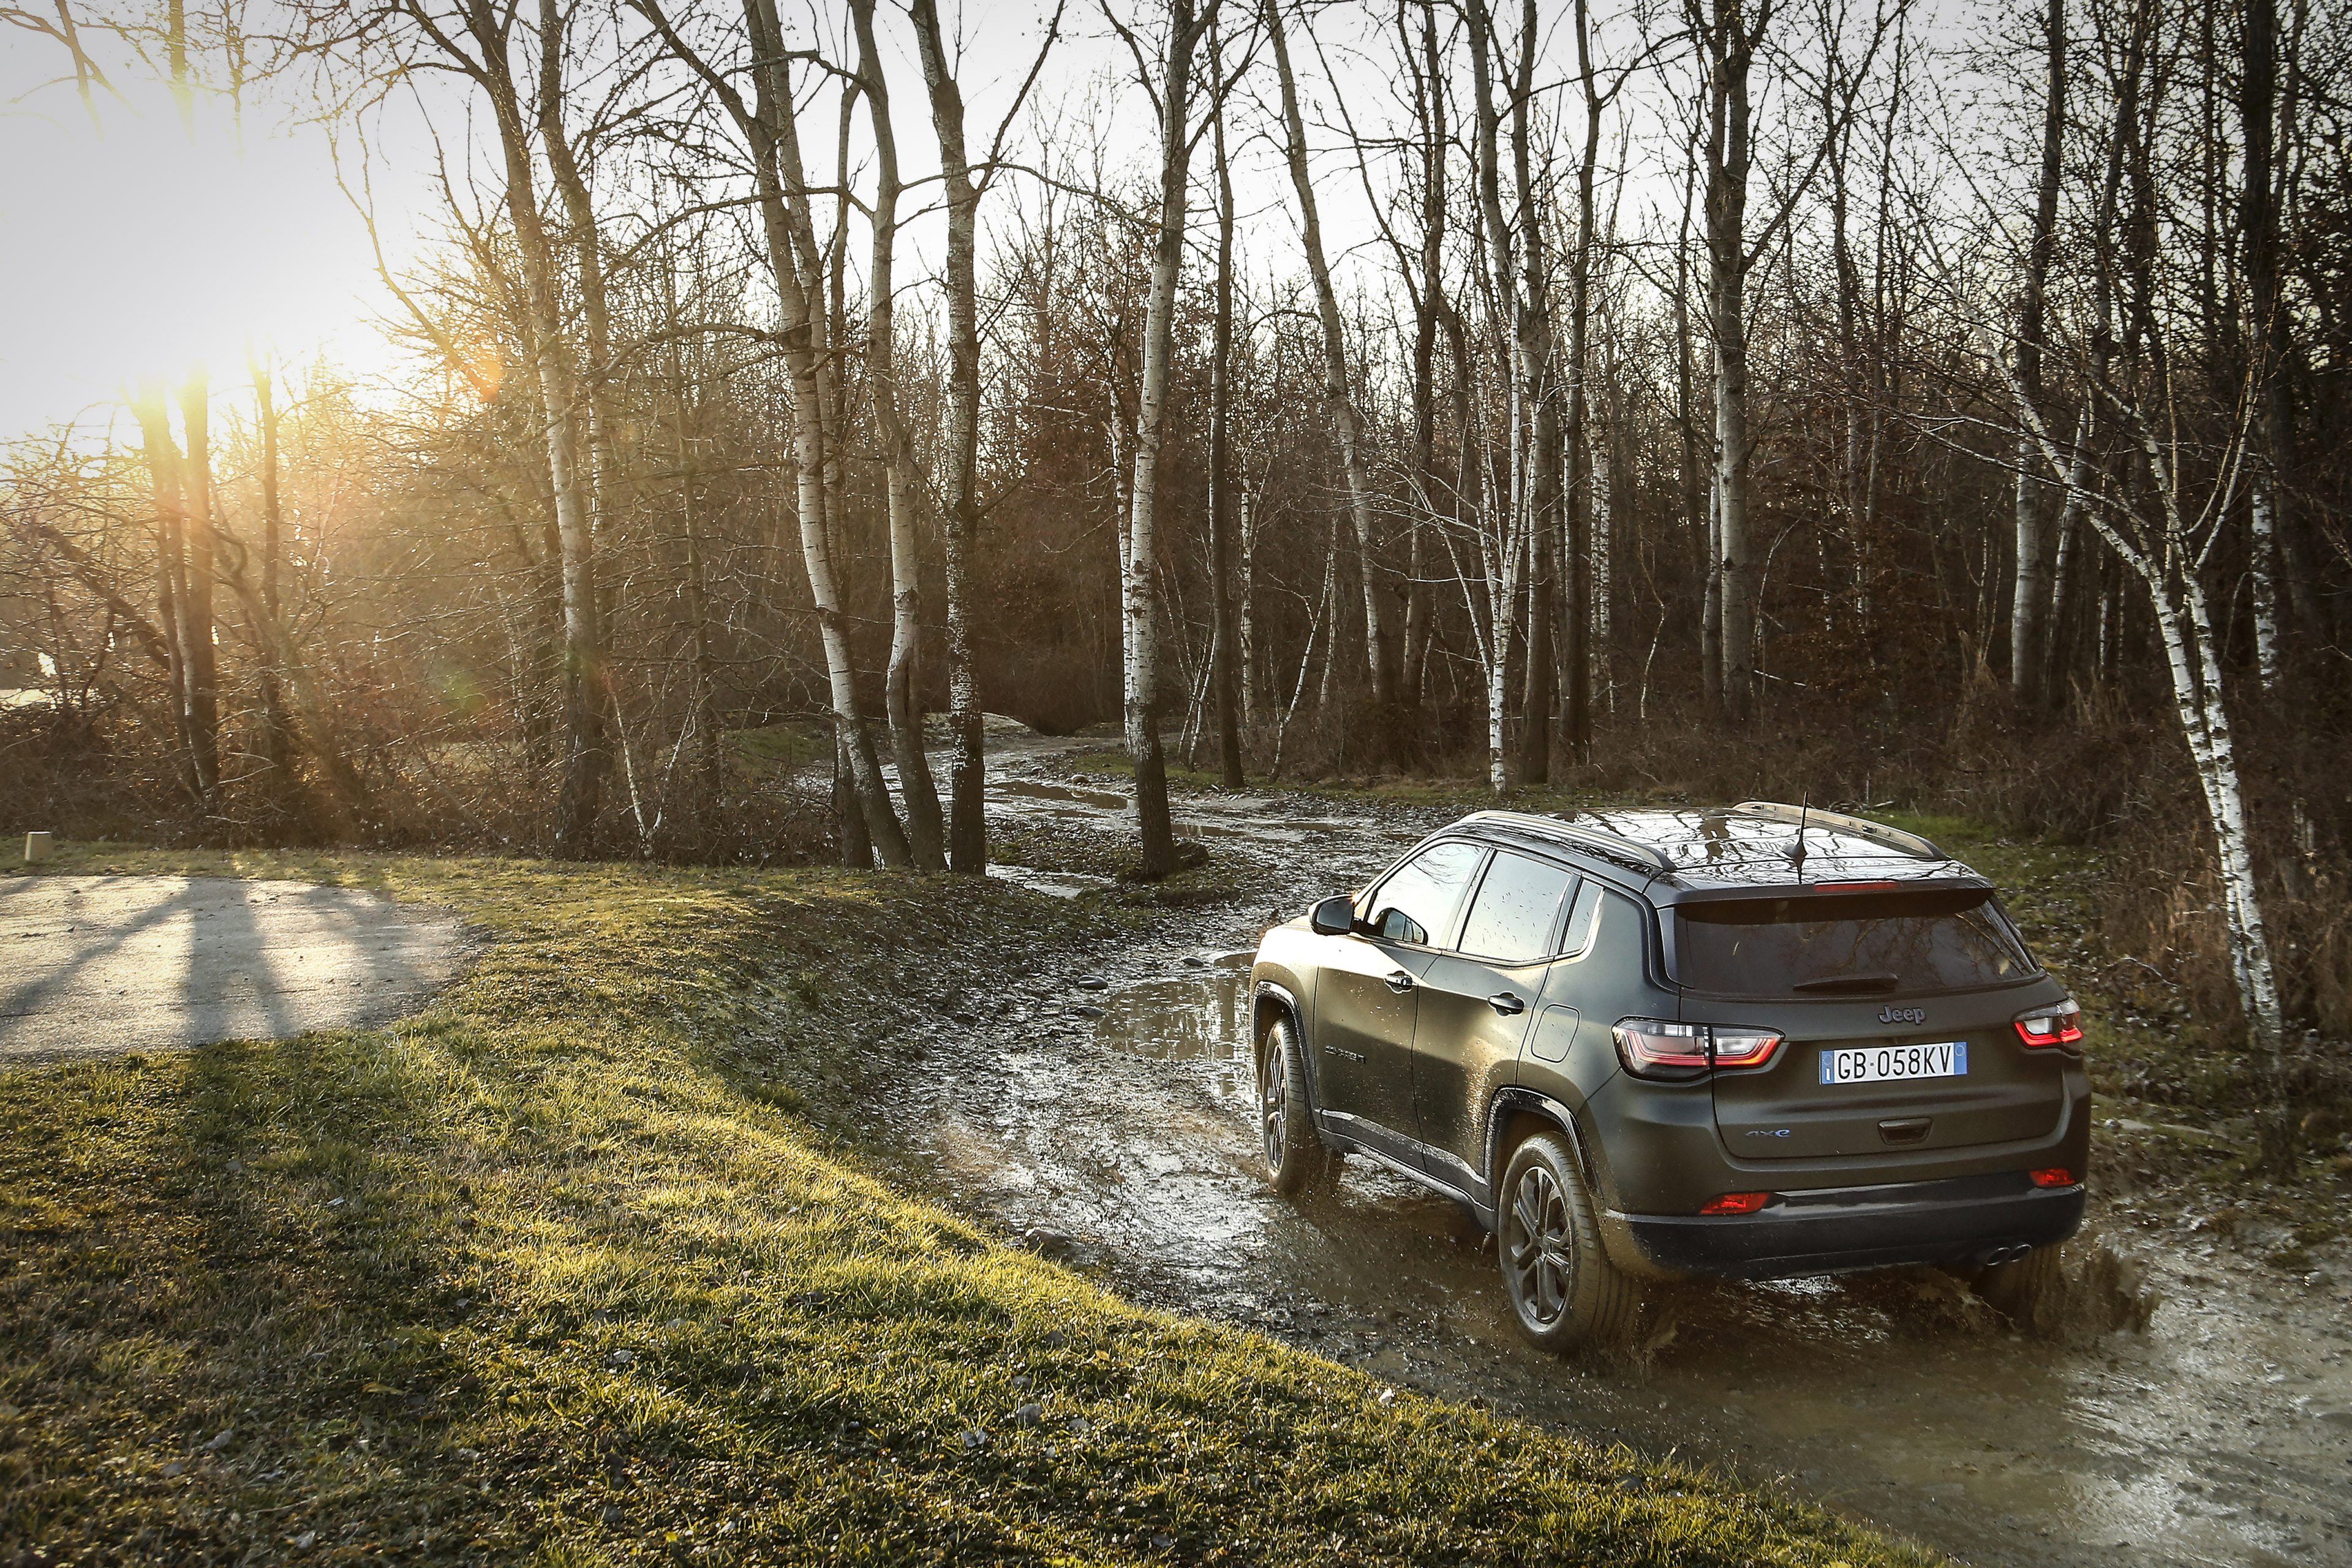 New Jeep Compass 80th Anniversary 4xe - achterkant natuur